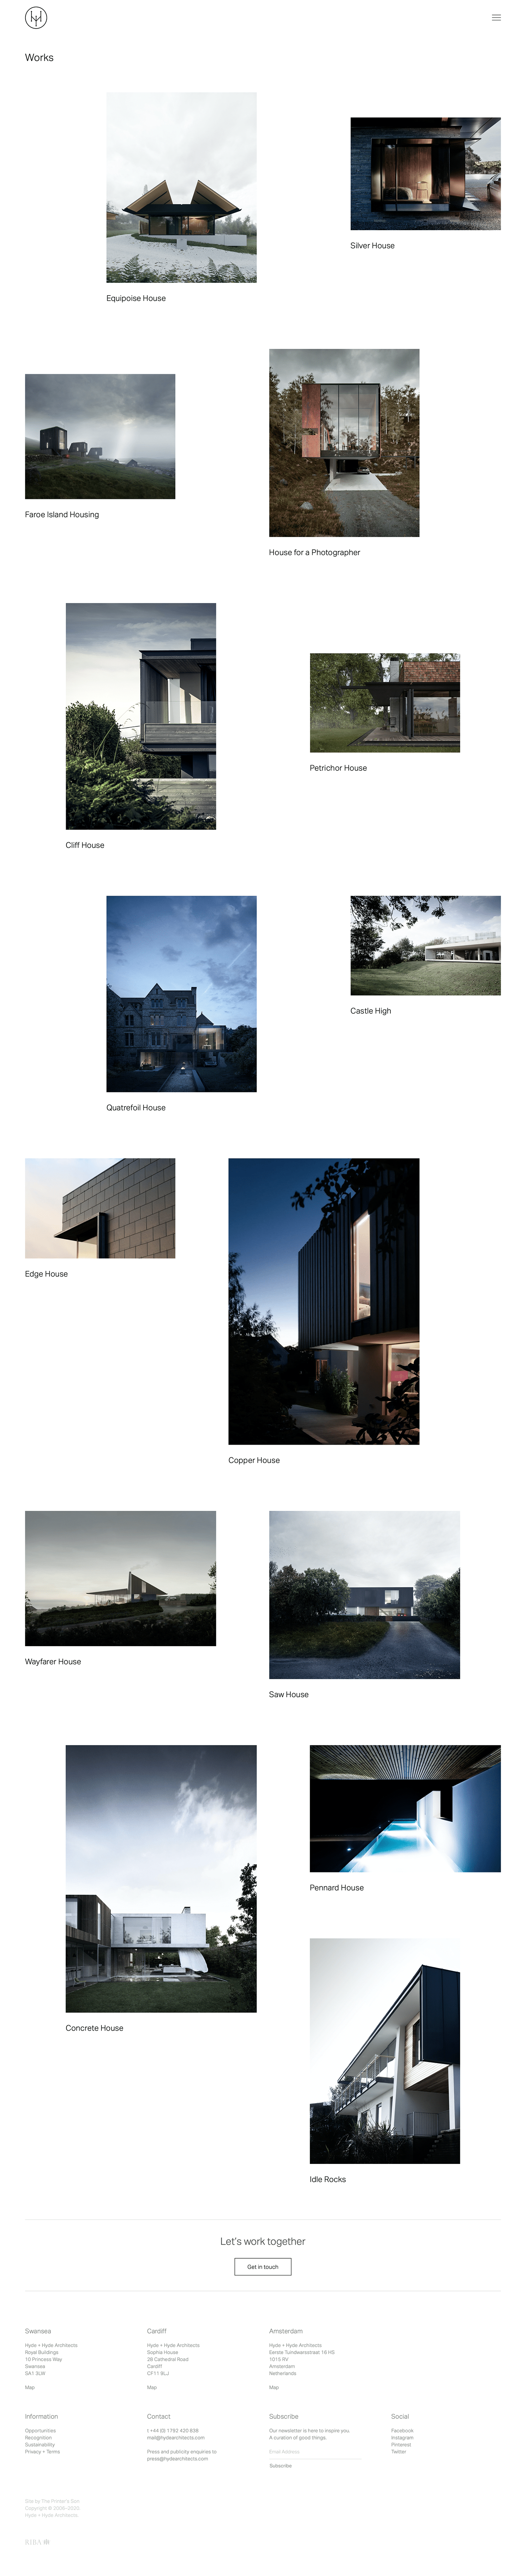 Hyde + Hyde + Hyde architects architecture squarespace grid based The Printer's Son hyde architects